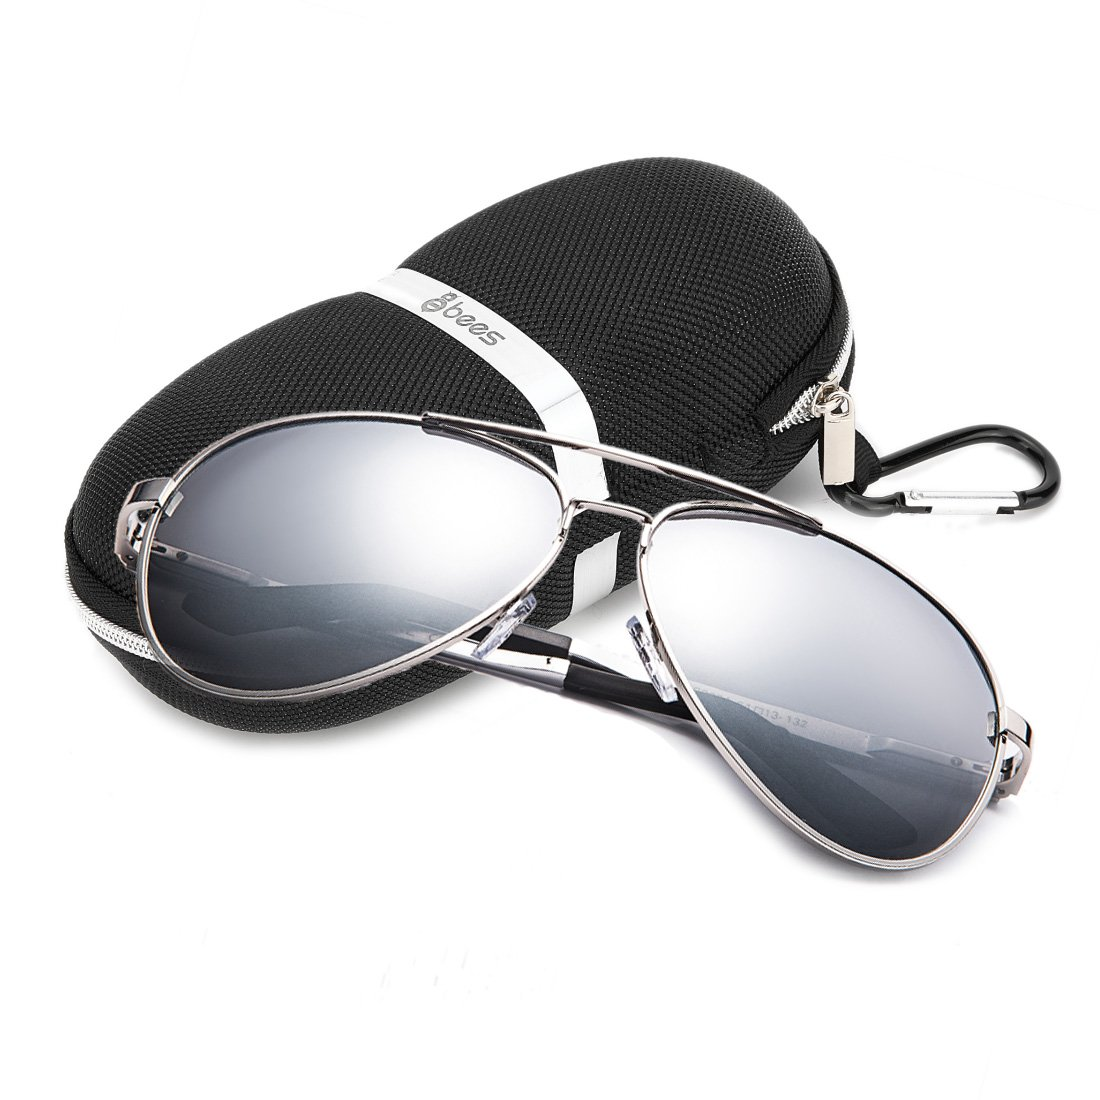 8Bees Polarized Aviator Sunglasses Driving UV400 Vintage for Men Women with case